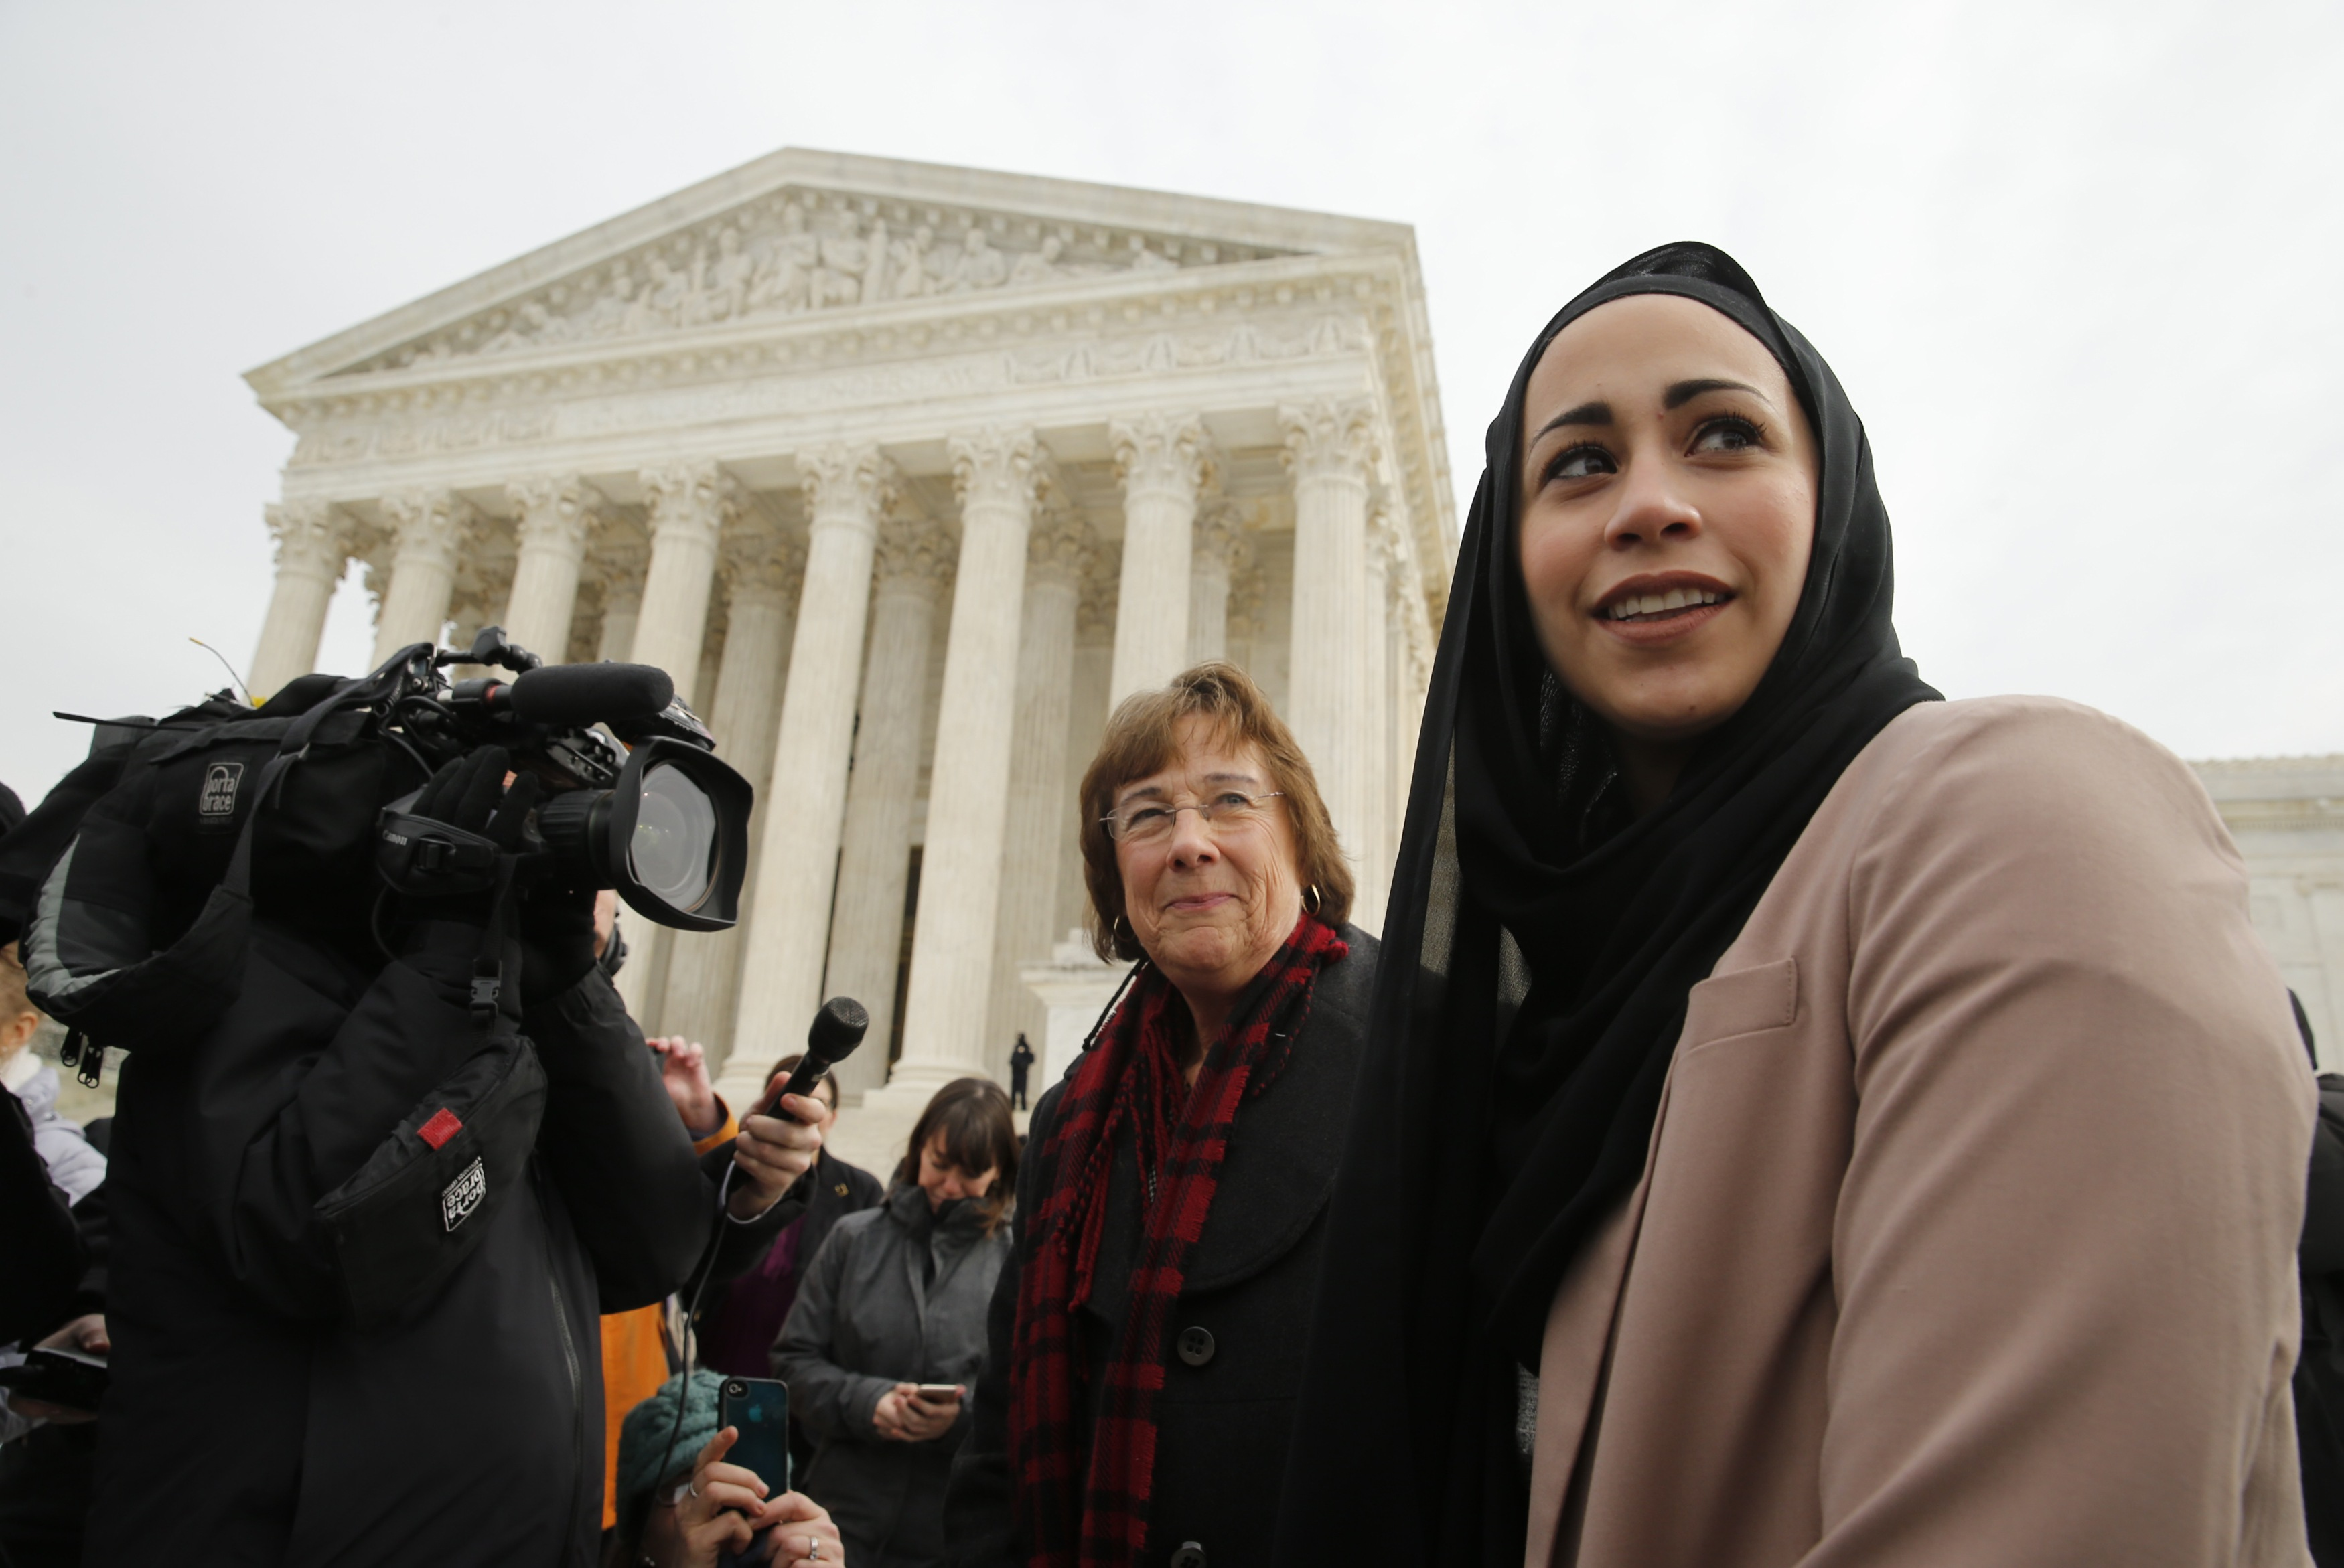 Samantha Elauf (R), who was denied a sales job at an Abercrombie Kids store in Tulsa in 2008, stands with U.S. Equal Employment Opportunity Commission (EEOC) lead attorney Barbara Seely (C) at the U.S. Supreme Court in Washington, February 25. REUTERS/Jim Bourg/Files